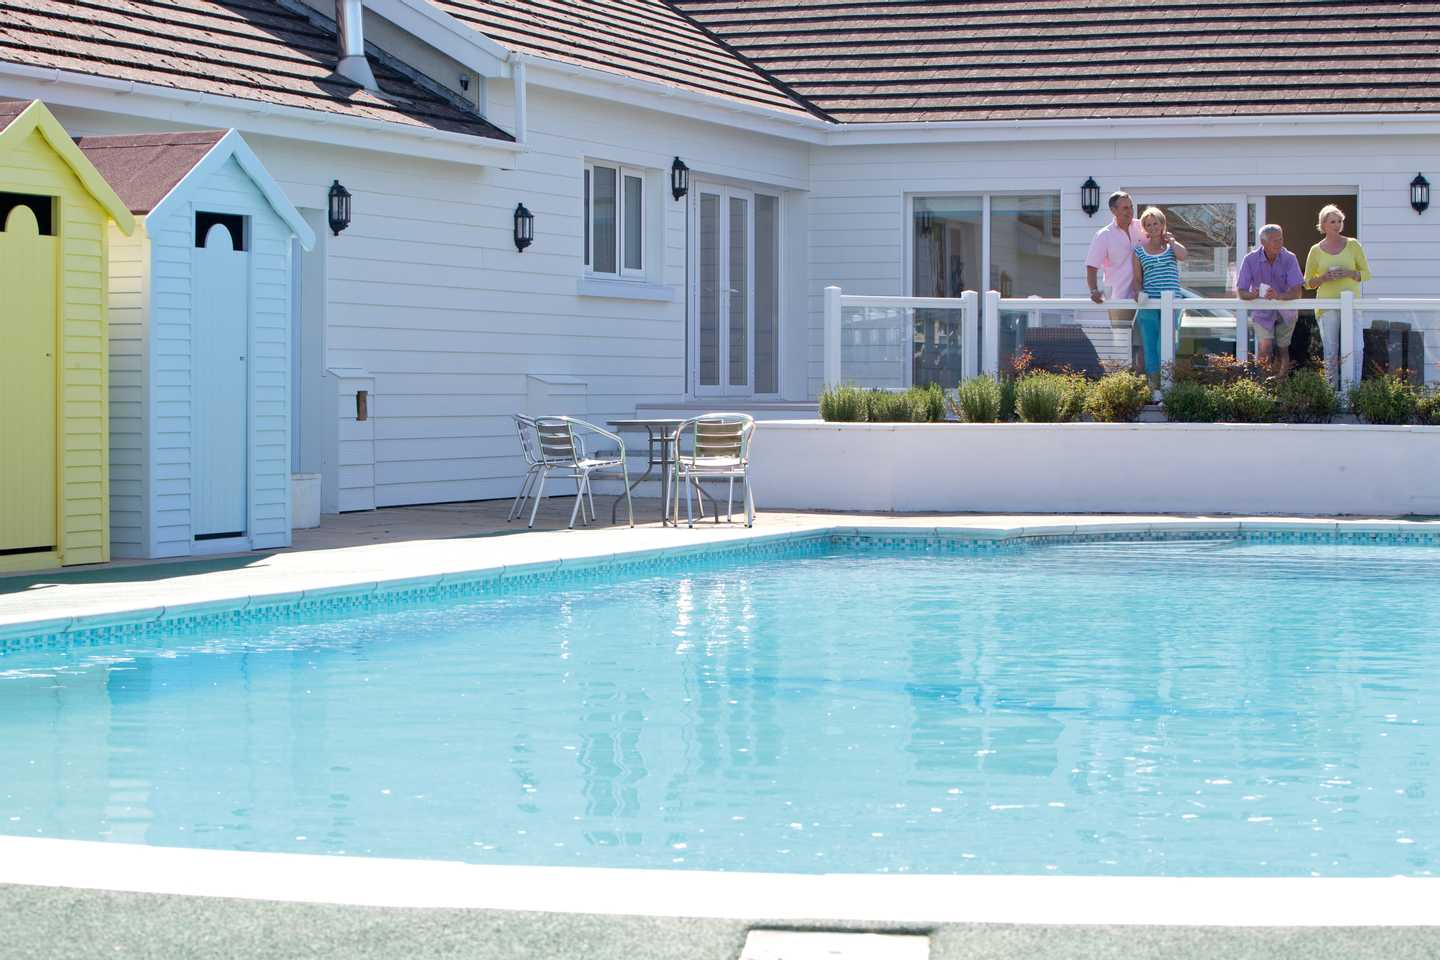 Outdoor pool at Penally Court